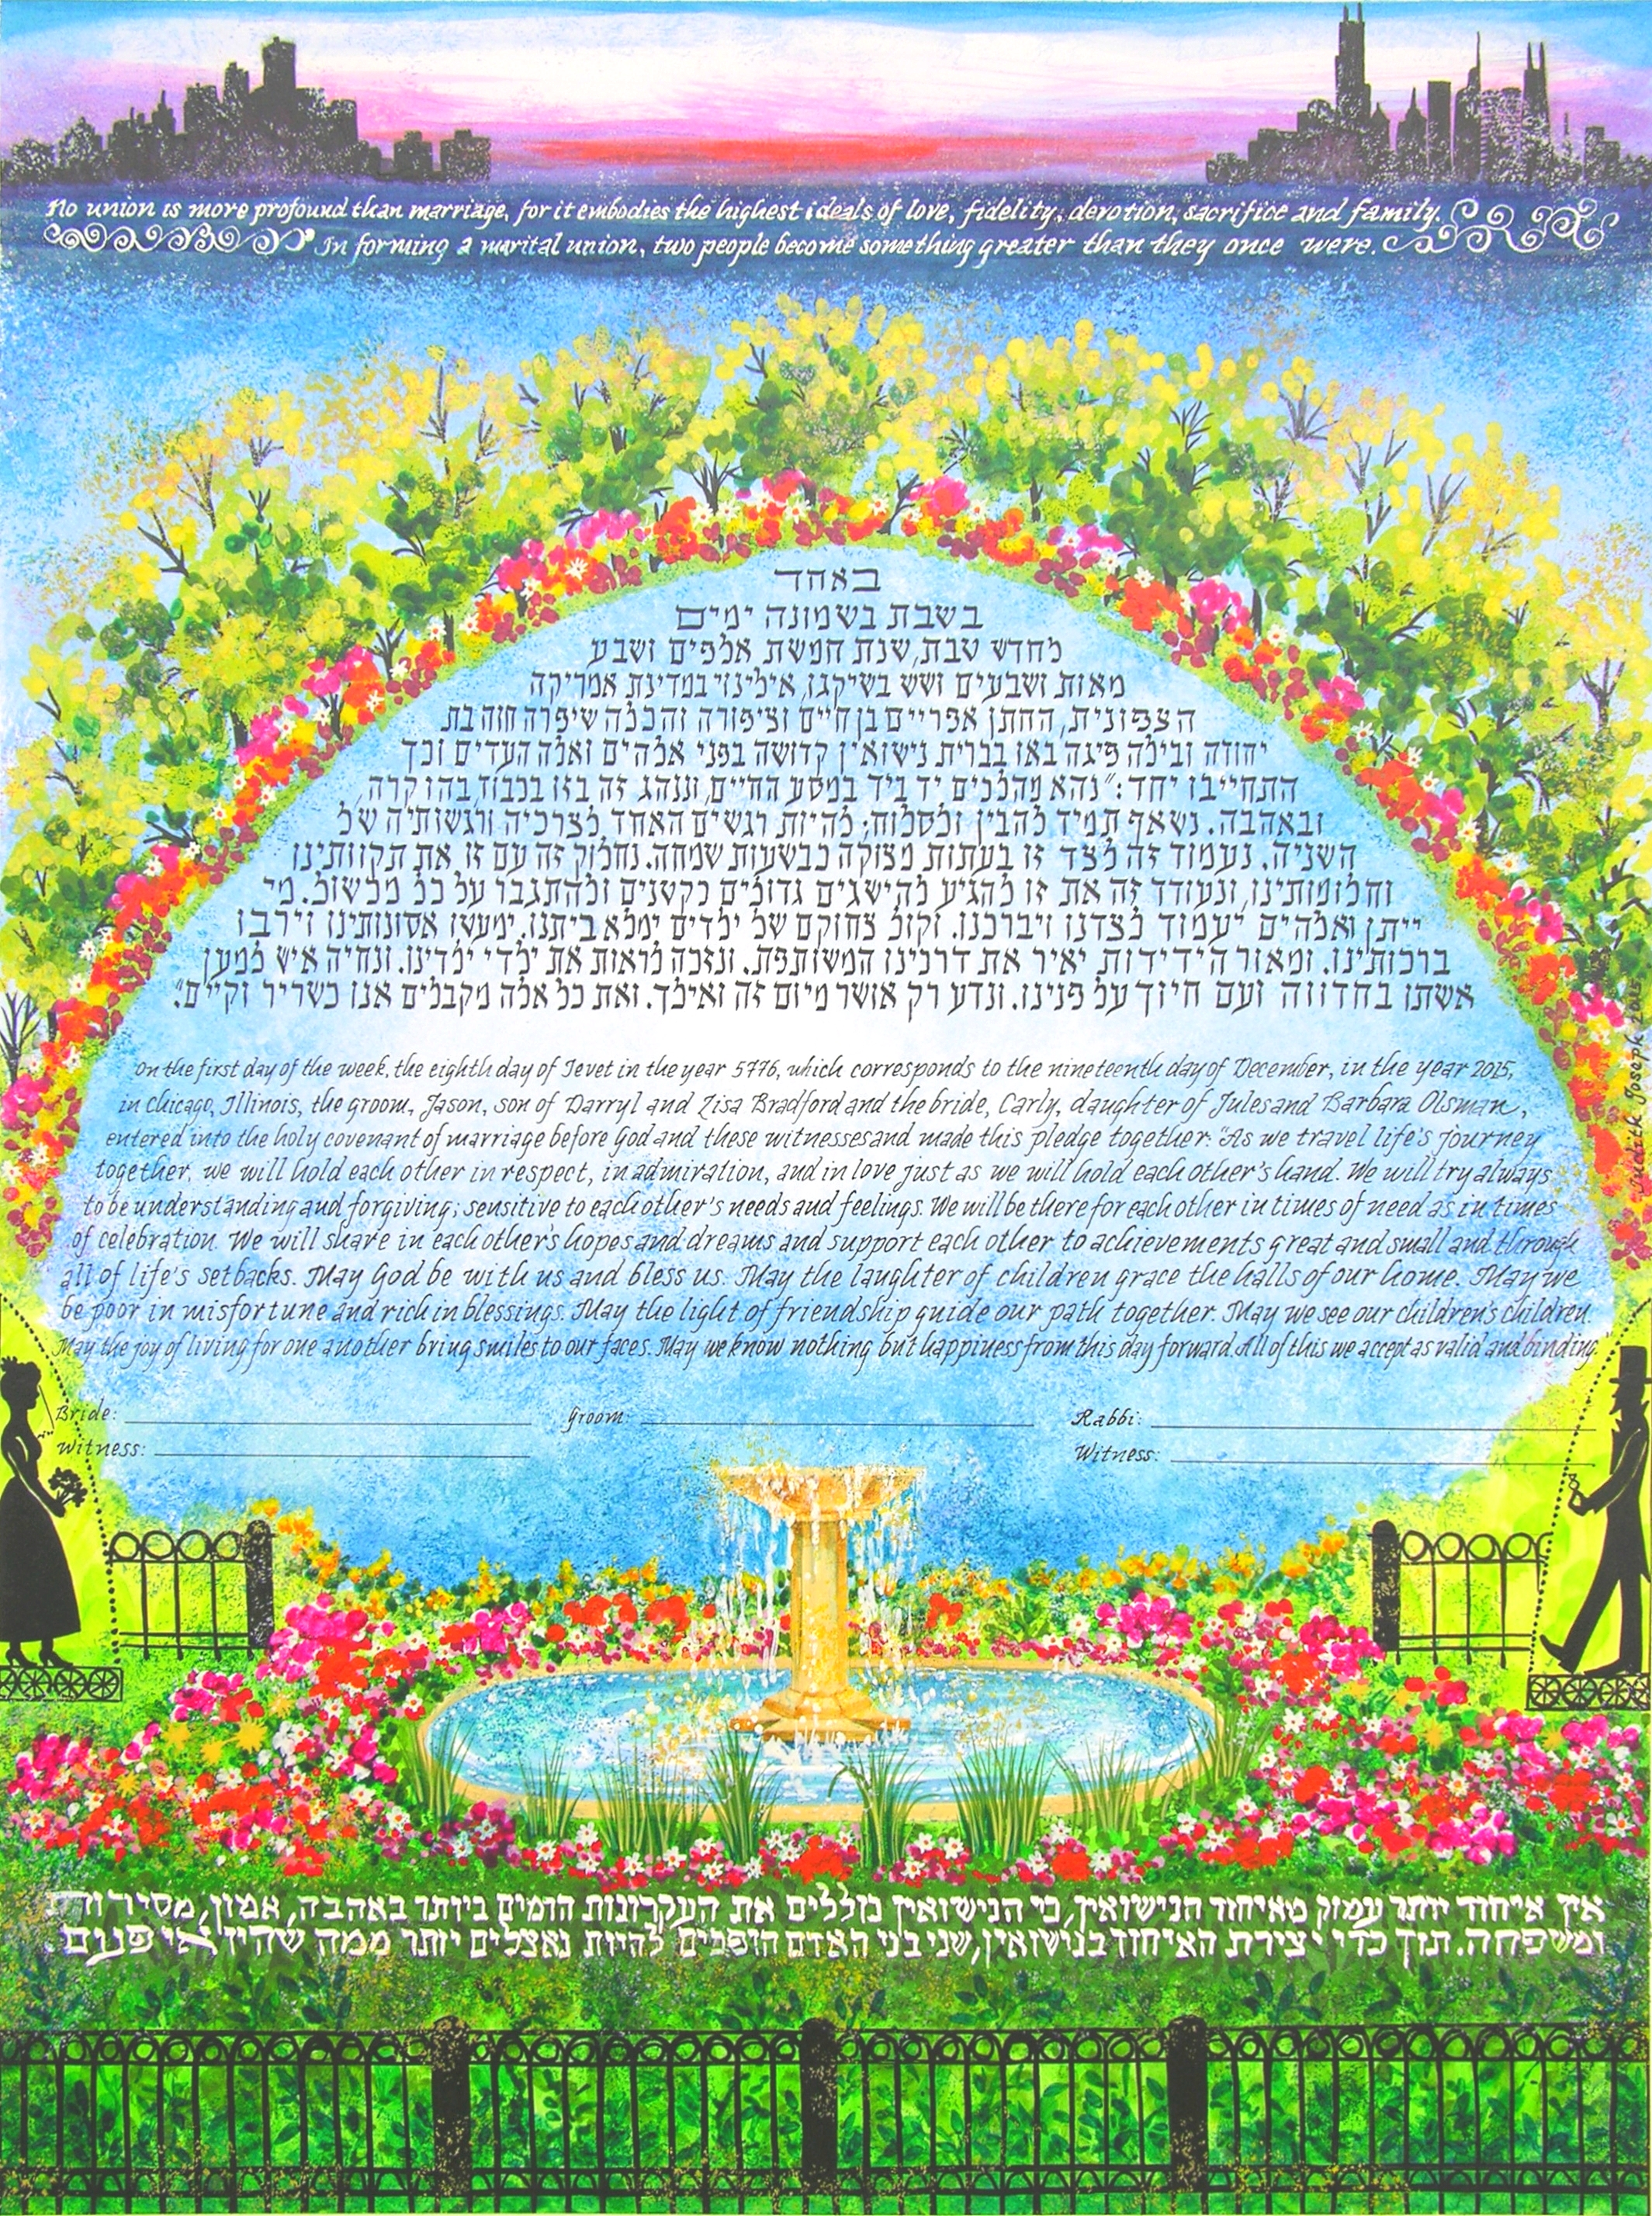 Washington Square Ketubah, Chicago, Illinois, 2015